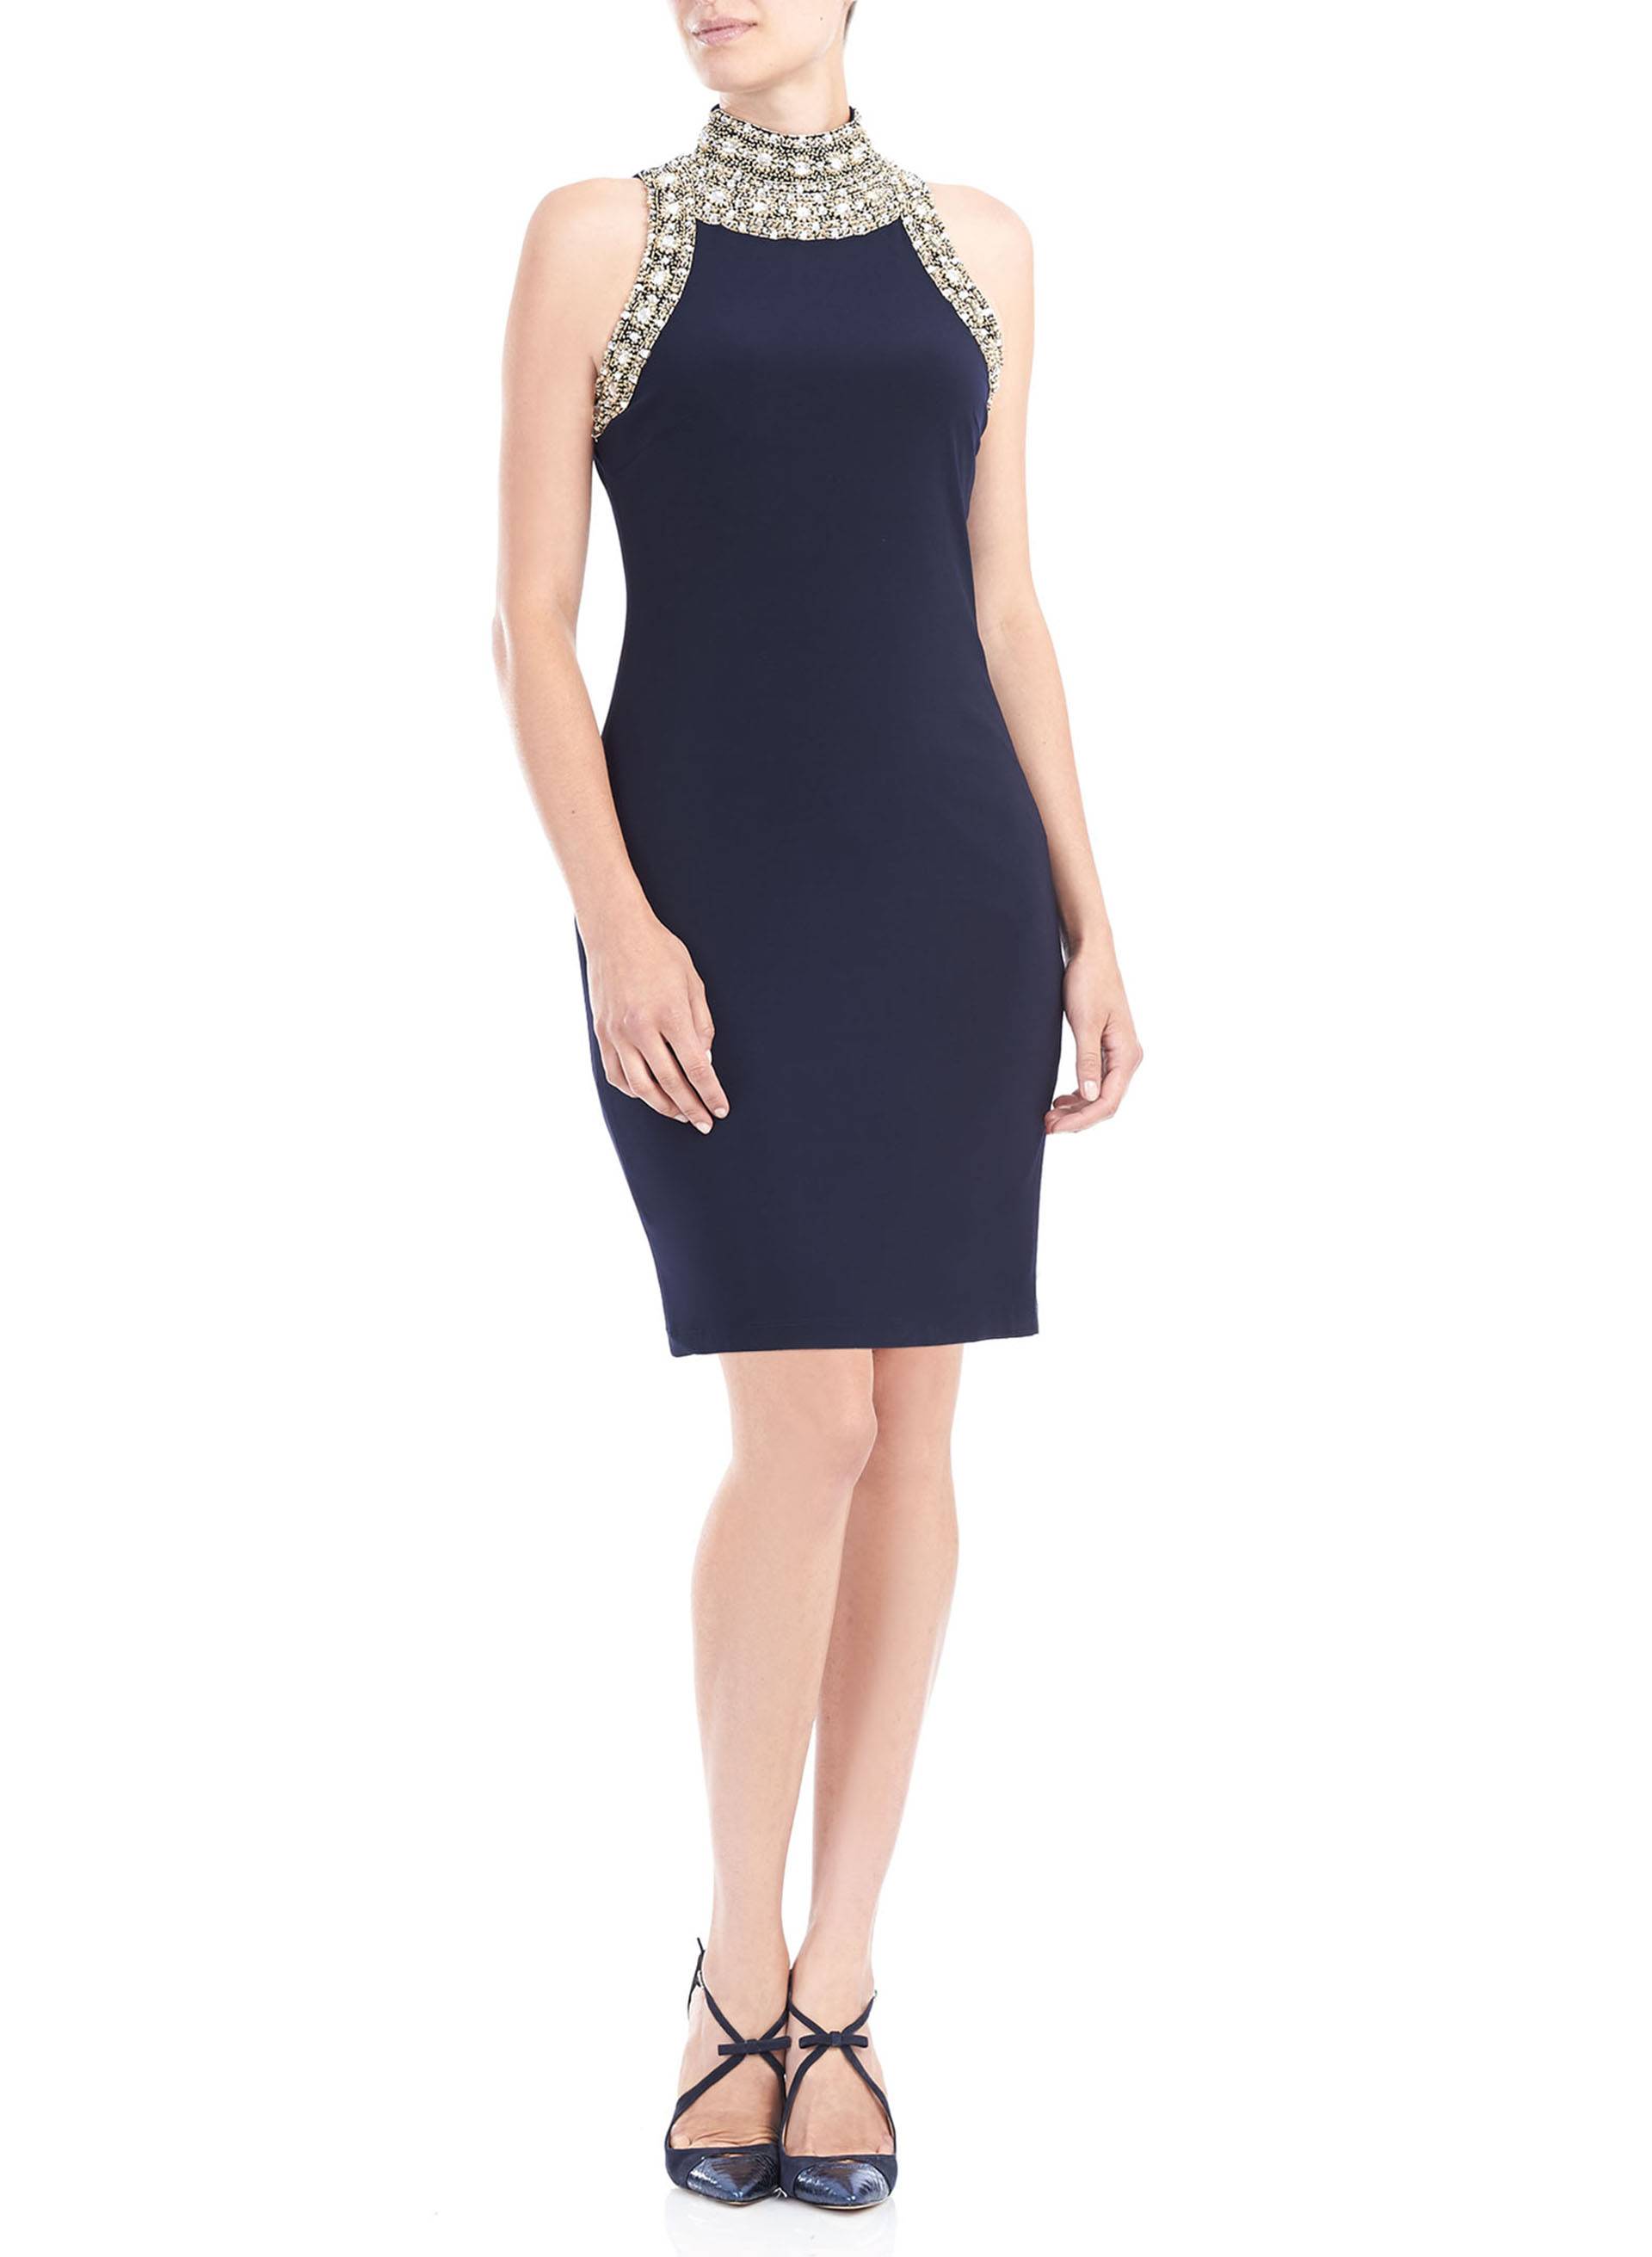 Sleeevless High Neck Beaded Dress, Blue, hi-res